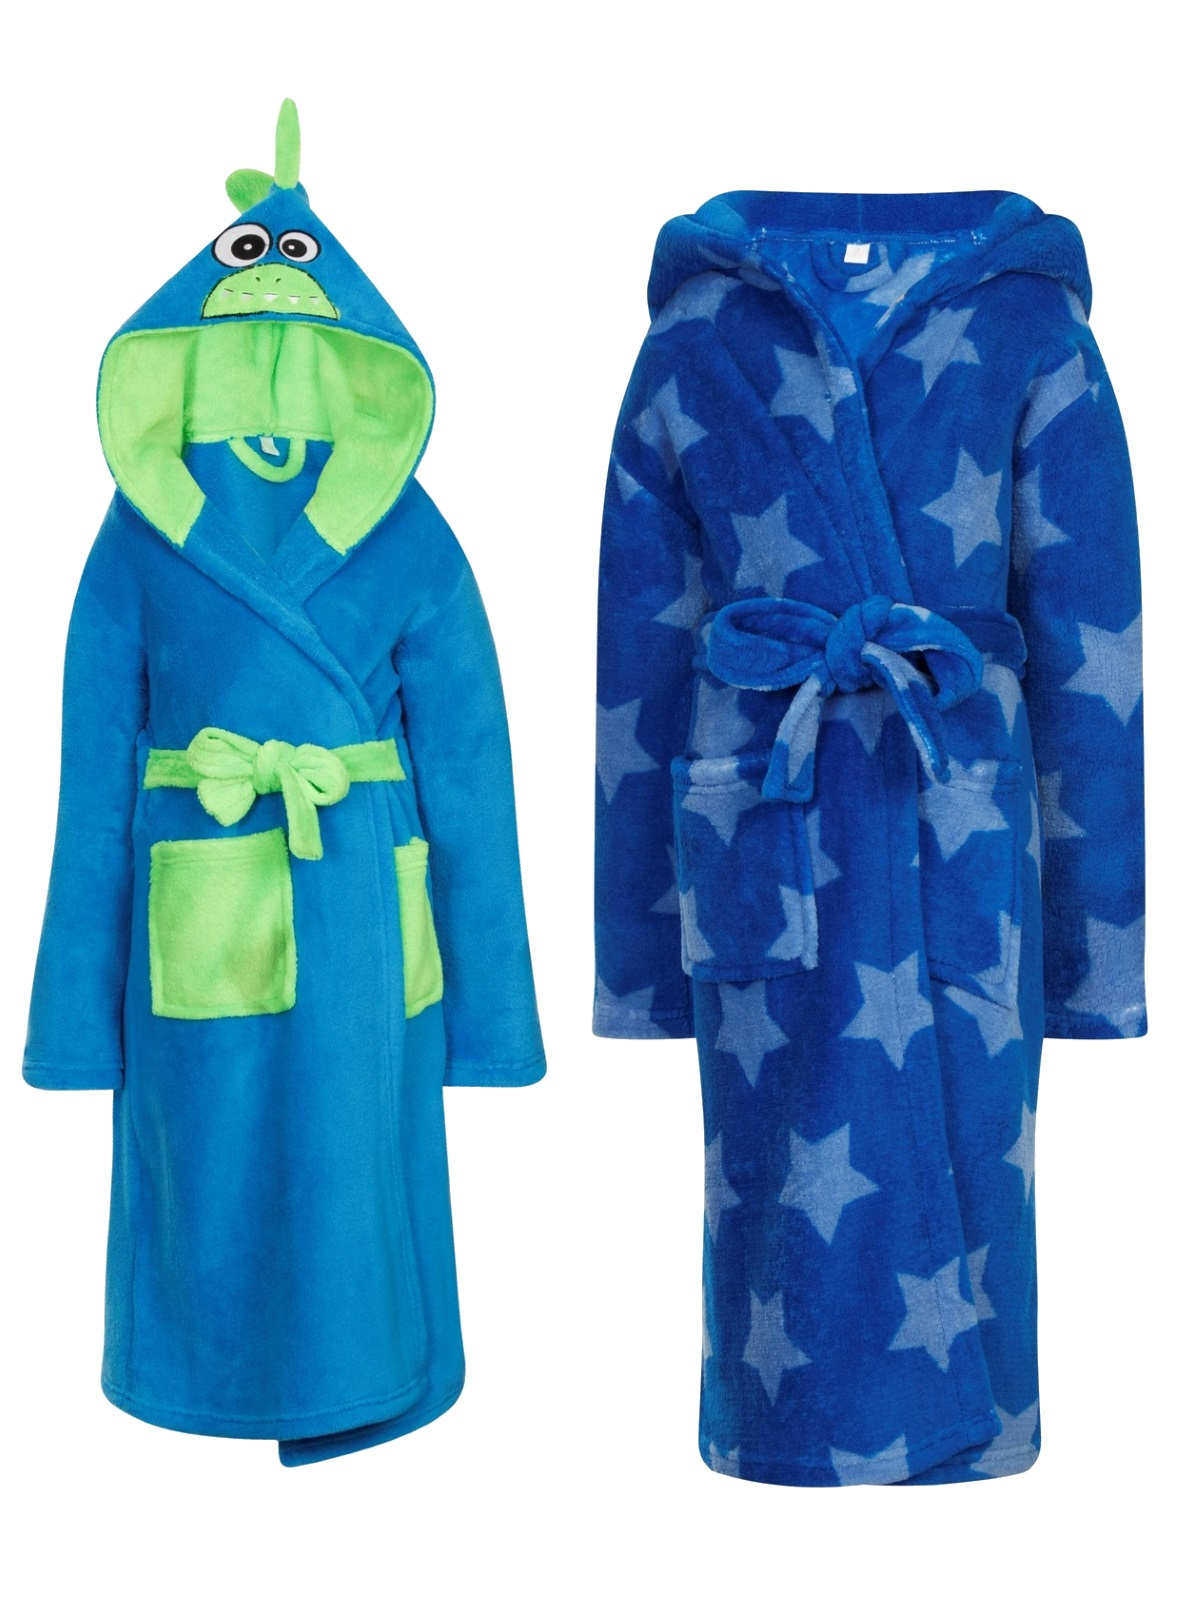 Types of boys' bathrobes. Boys' bathrobes are available in a variety of materials such as terry cloth, fleece, and cotton. Terry cloth is absorbent, like a towel, while fleece is a fluffy fabric. Cotton is a lightweight material that's thinner than other robe fabrics.